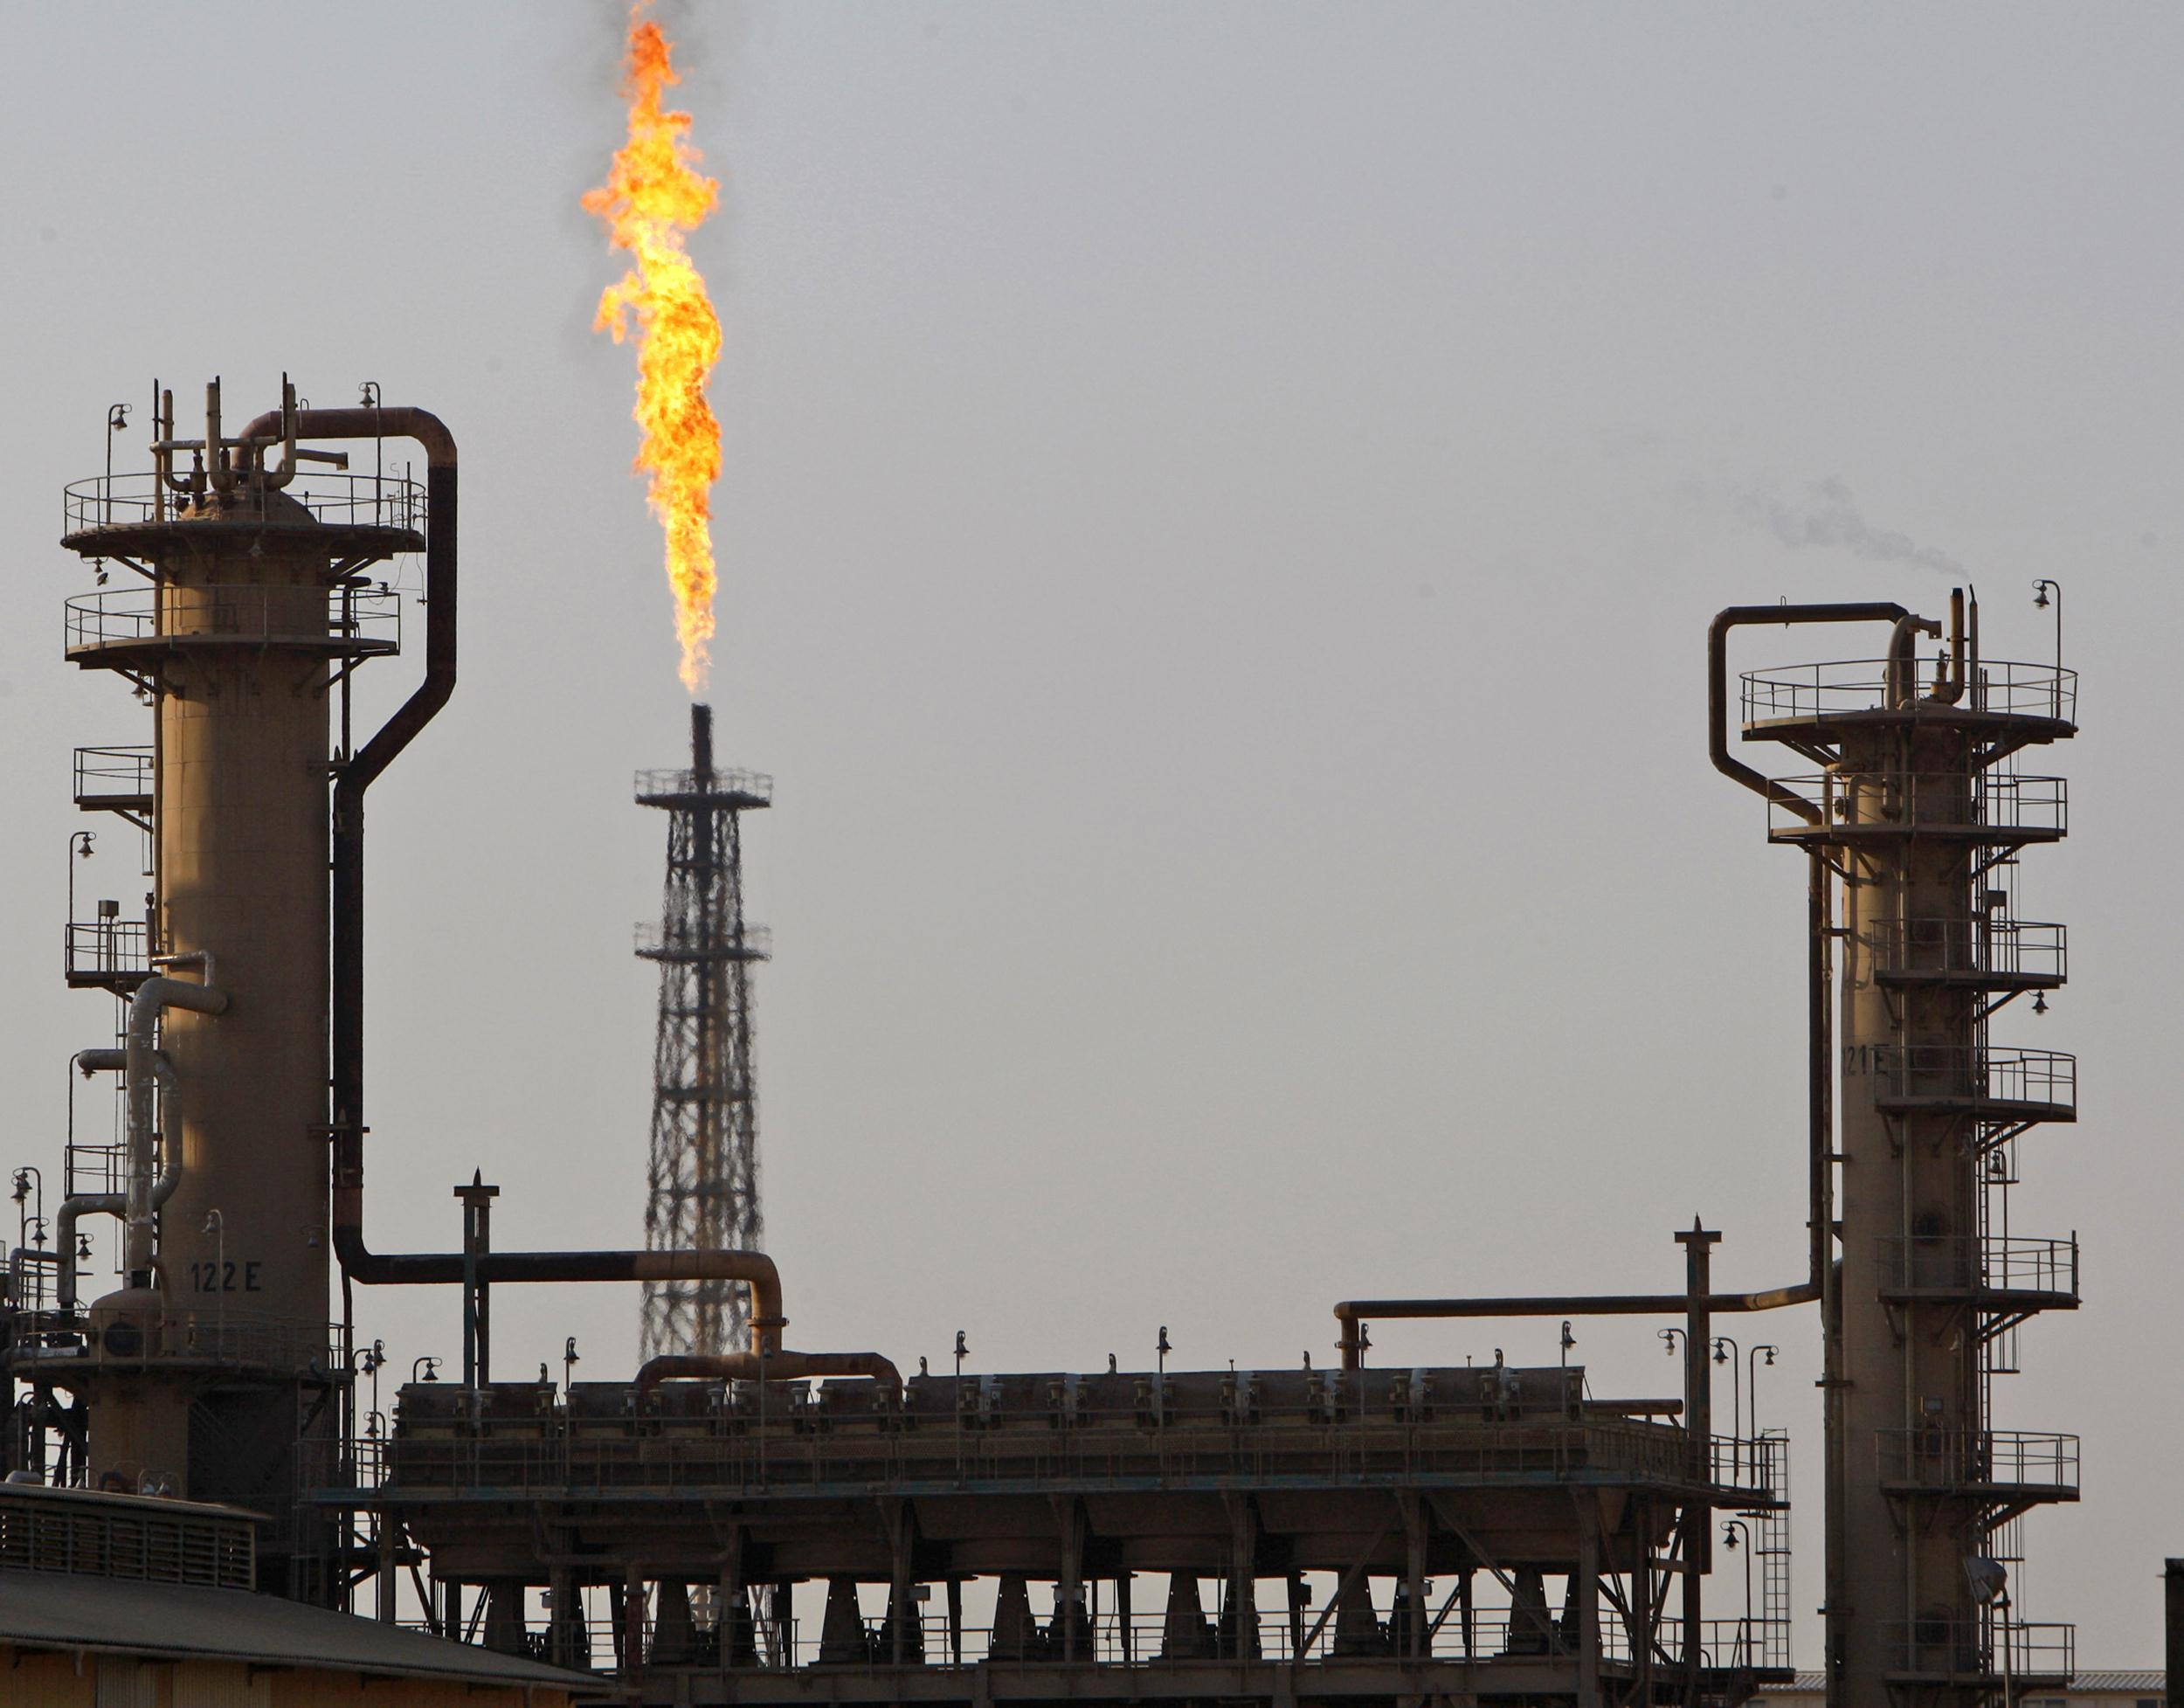 Baiji oil refinery in Iraq